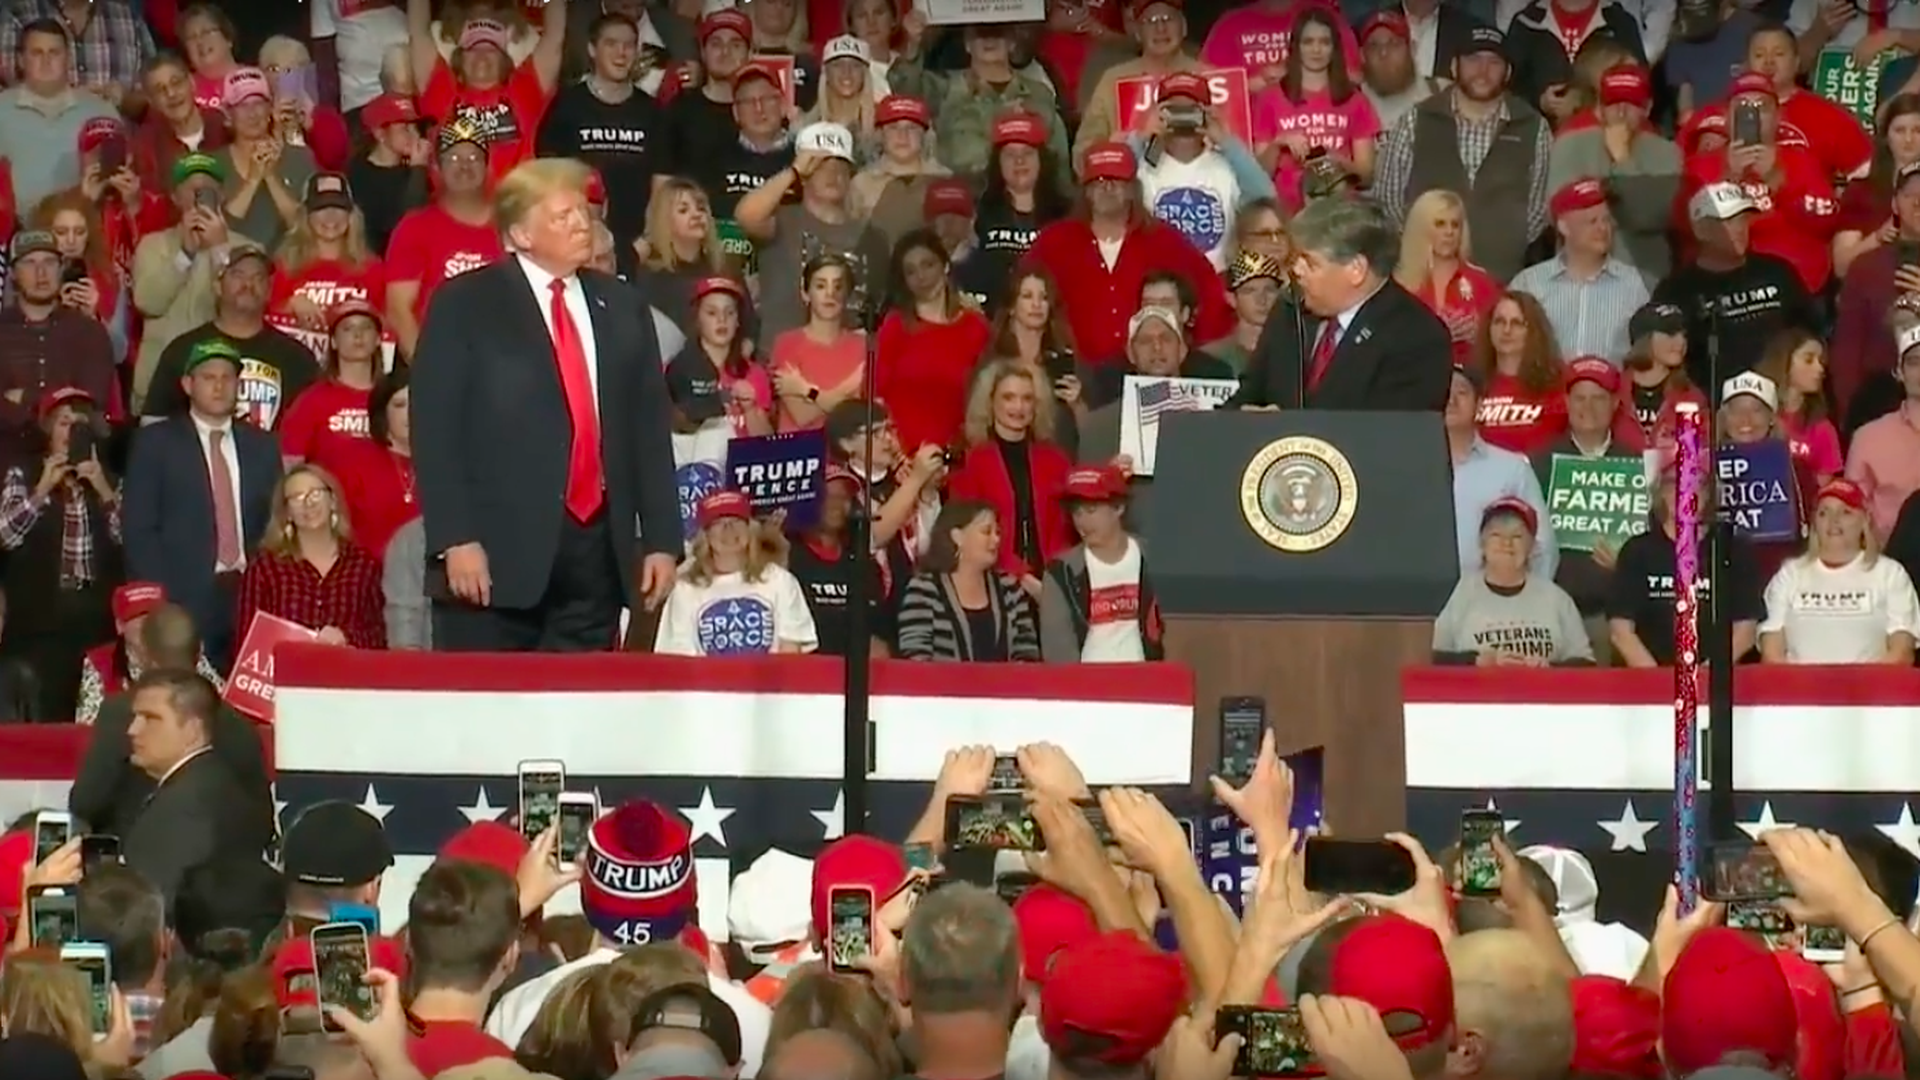 Sean Hannity joins Trump on stage at rally after tweeting he wouldn't